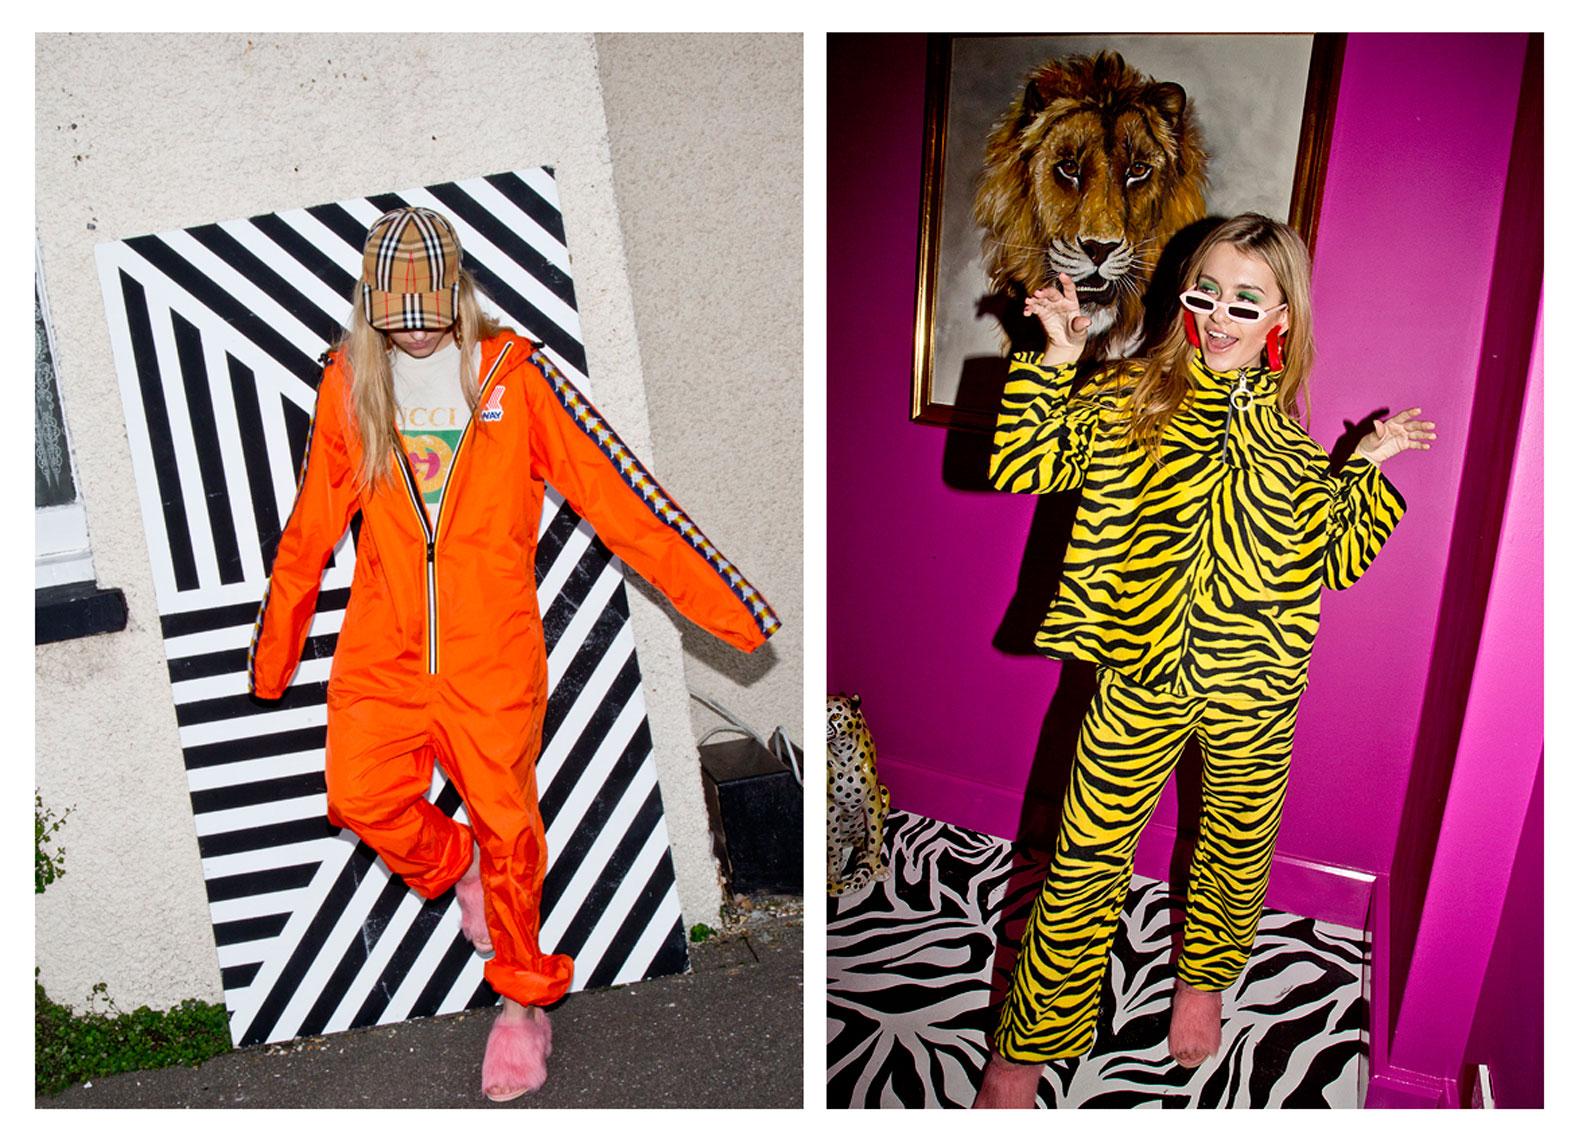 issie-gibbons-fashion-stylist-kappa-gucci-burberry-zebra-fluff-margate